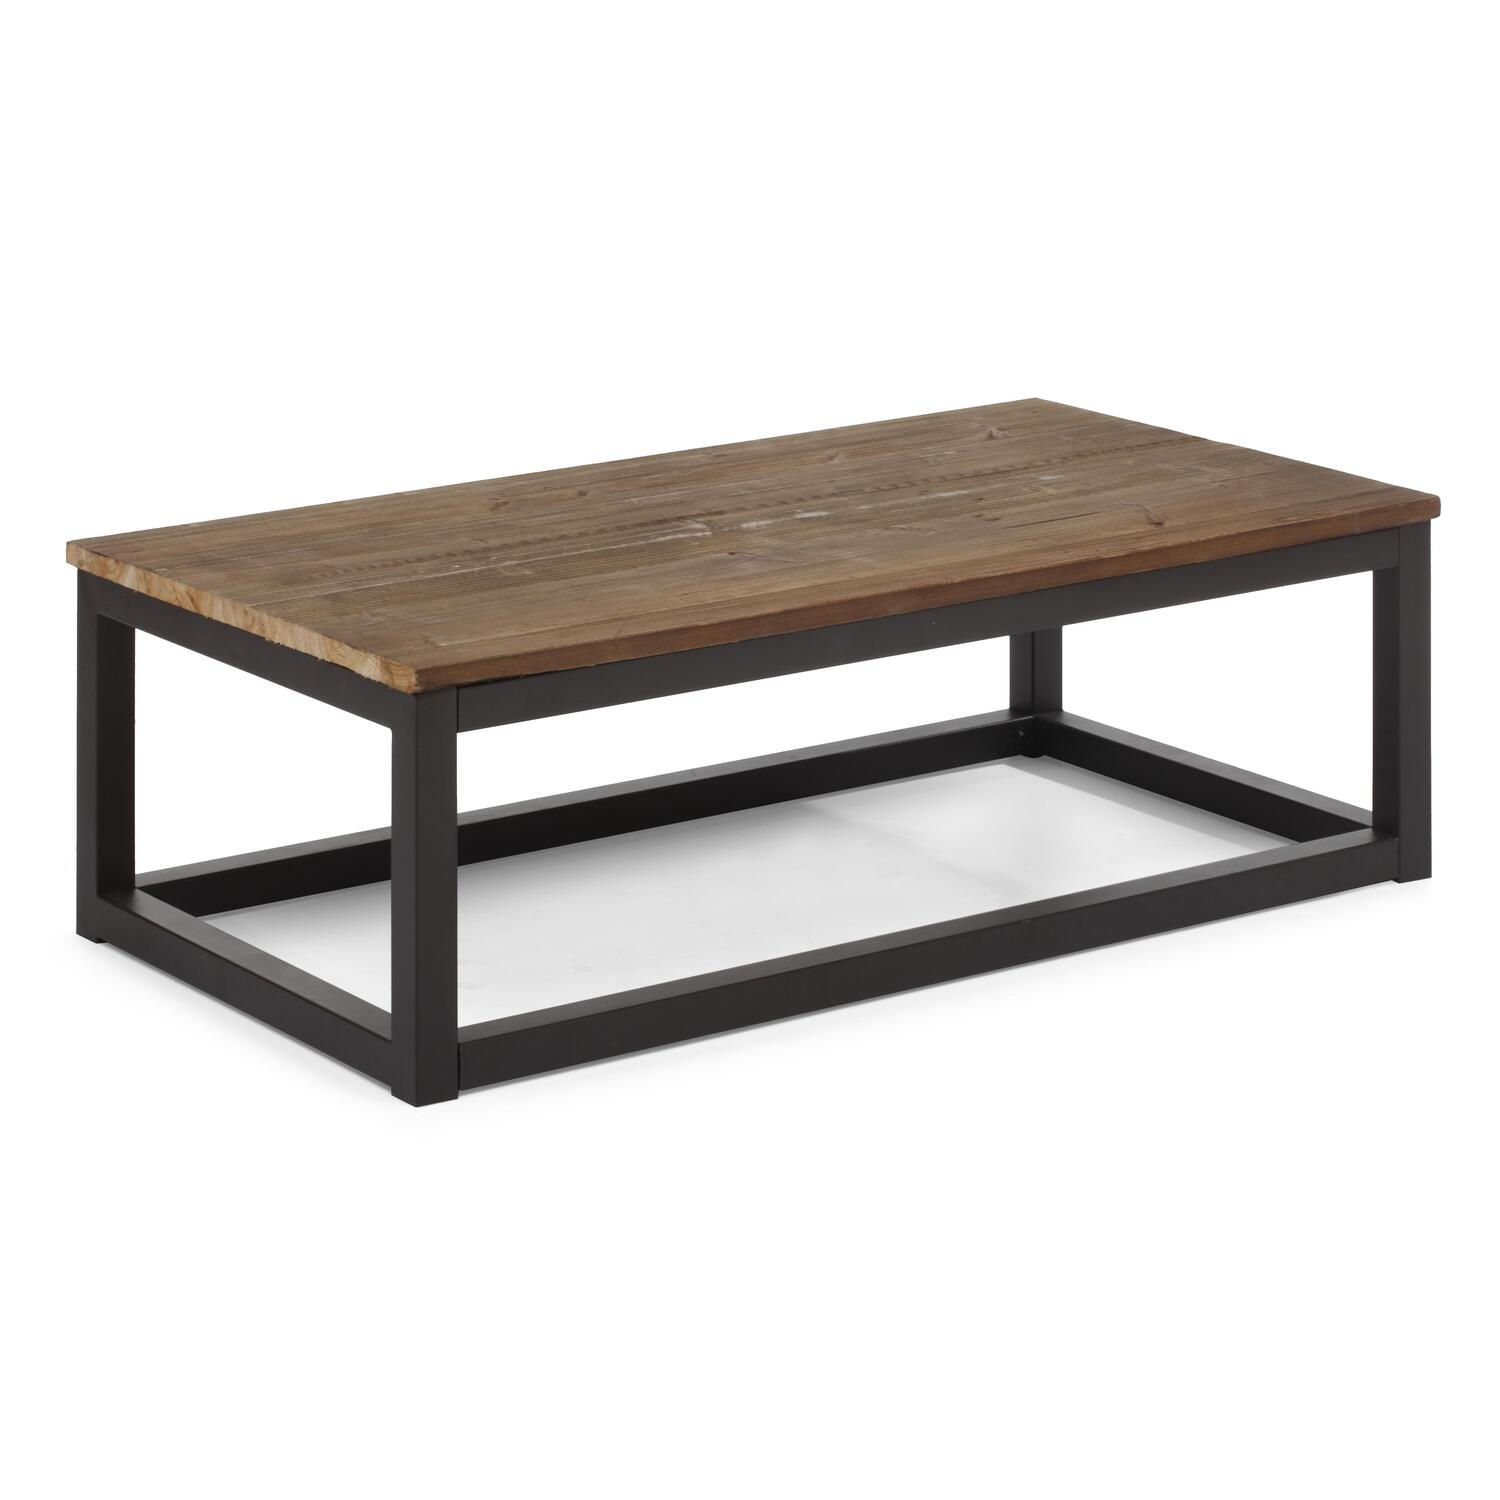 Zuo modern civic center long coffee table by oj commerce for Center table coffee table